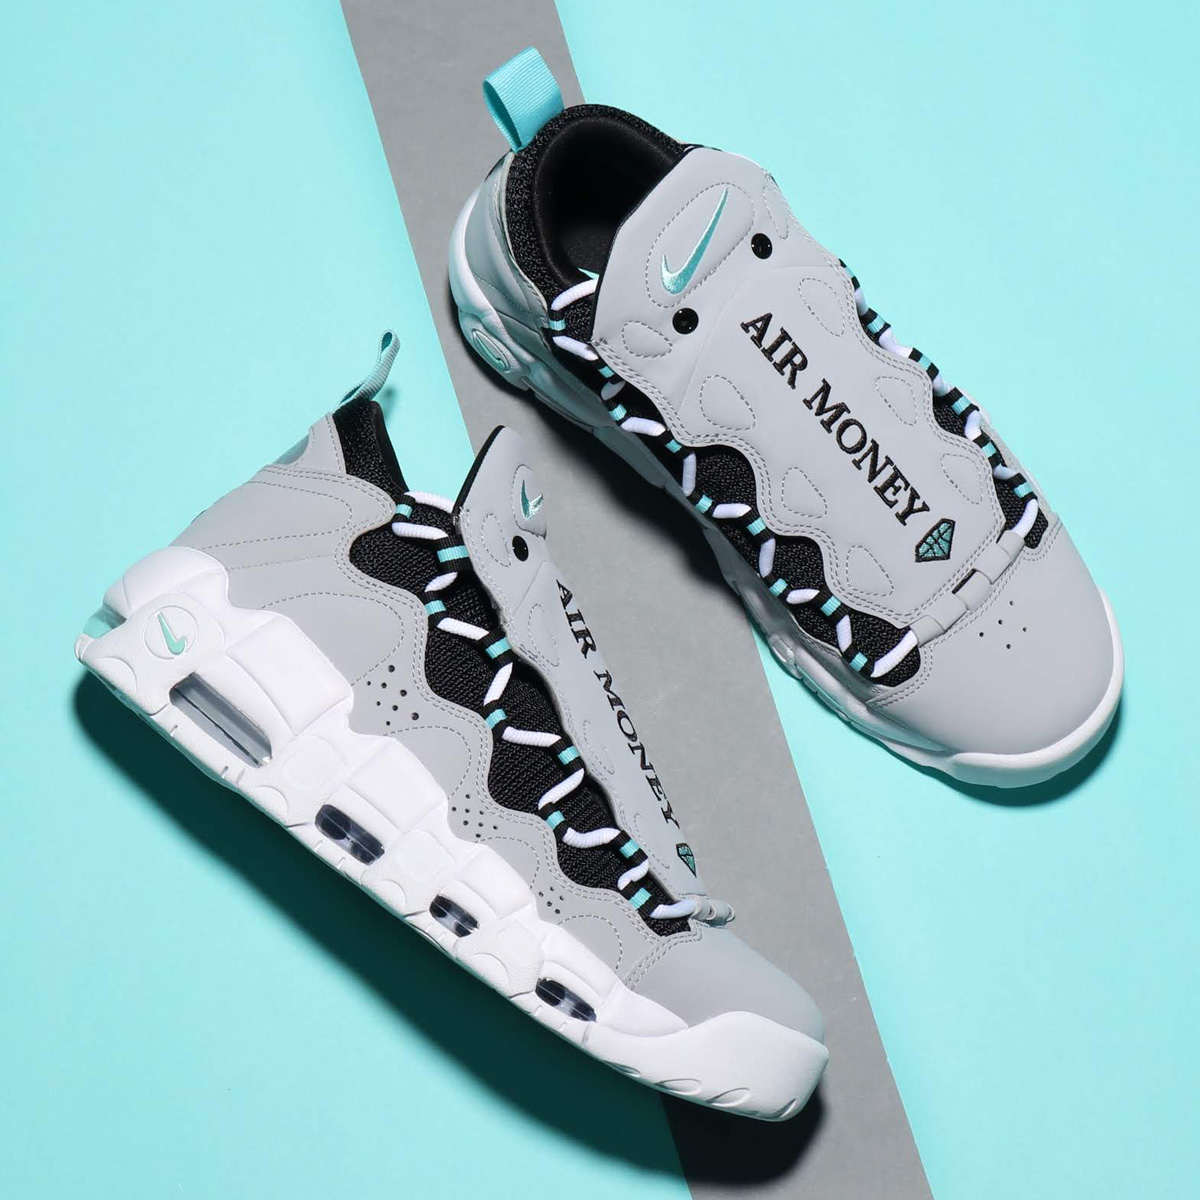 NIKE AIR MORE MONEY (ナイキ エア モア マネー) WOLF GREY/ISLAND GREEN-BLACK【メンズ スニーカー】18SU-S